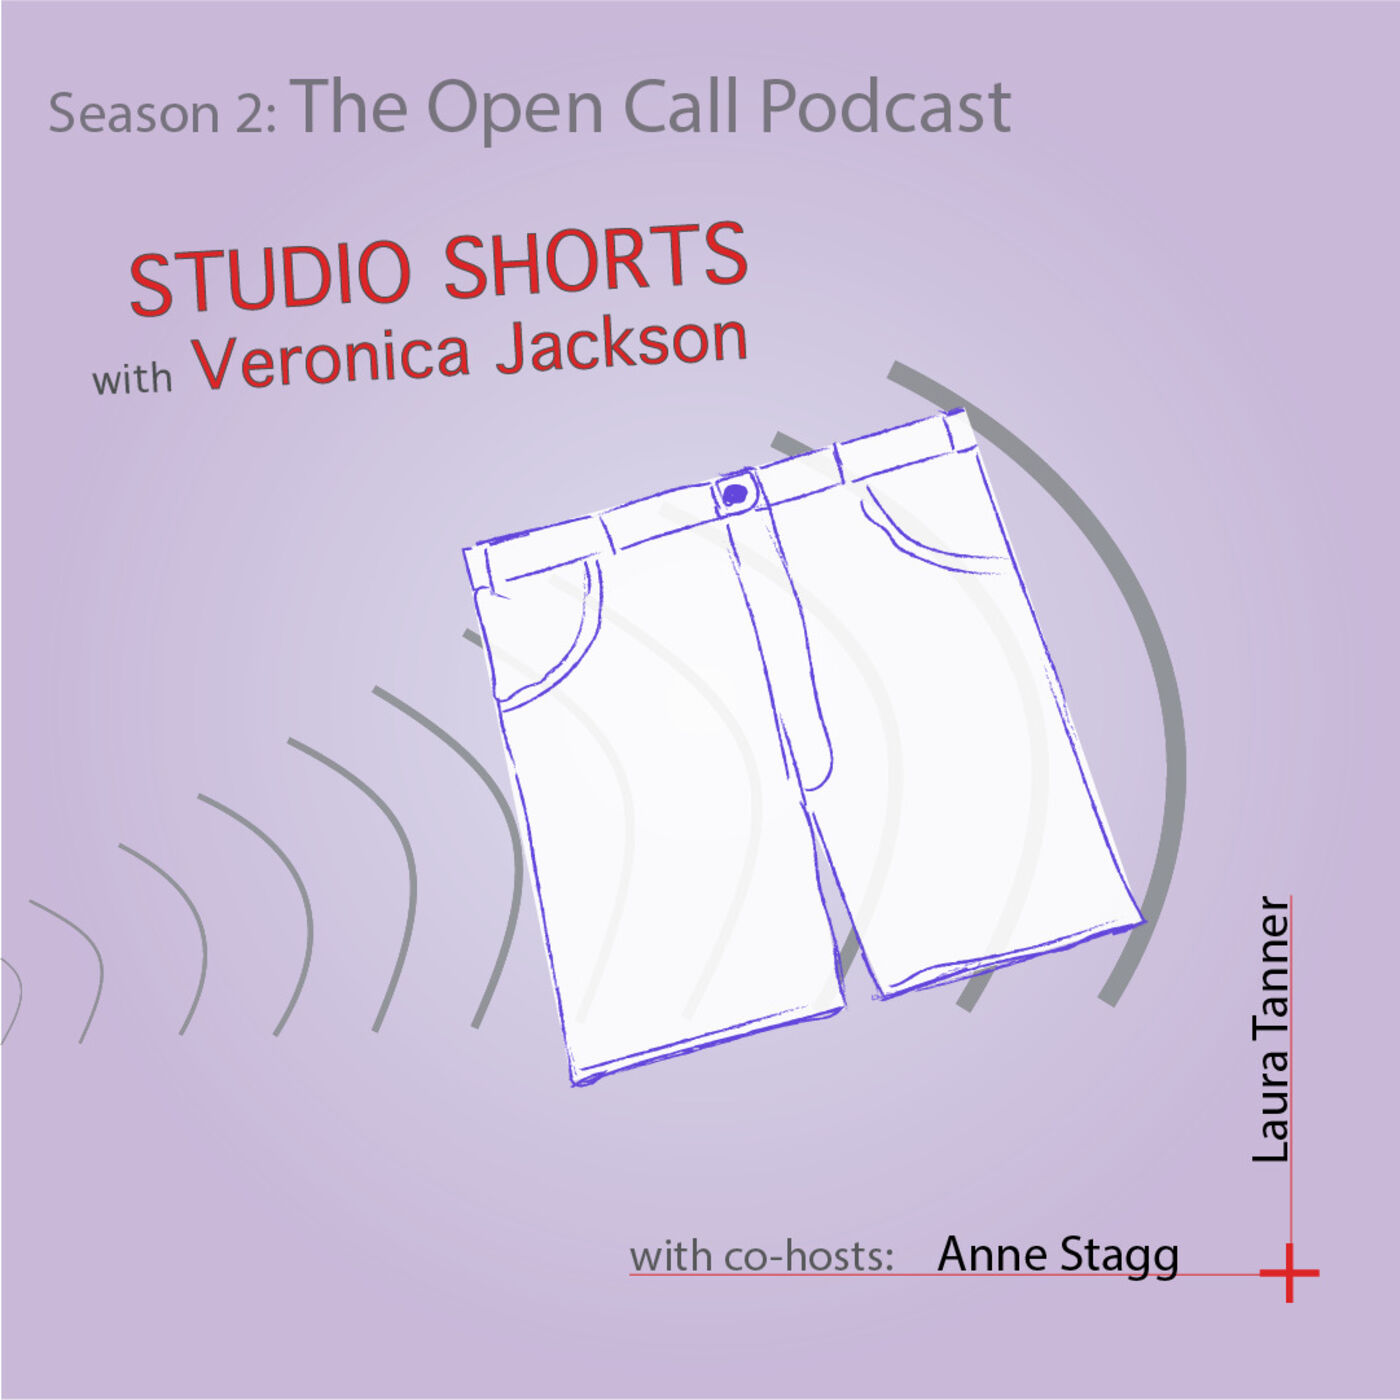 The Open Call Podcast with Veronica Jackson